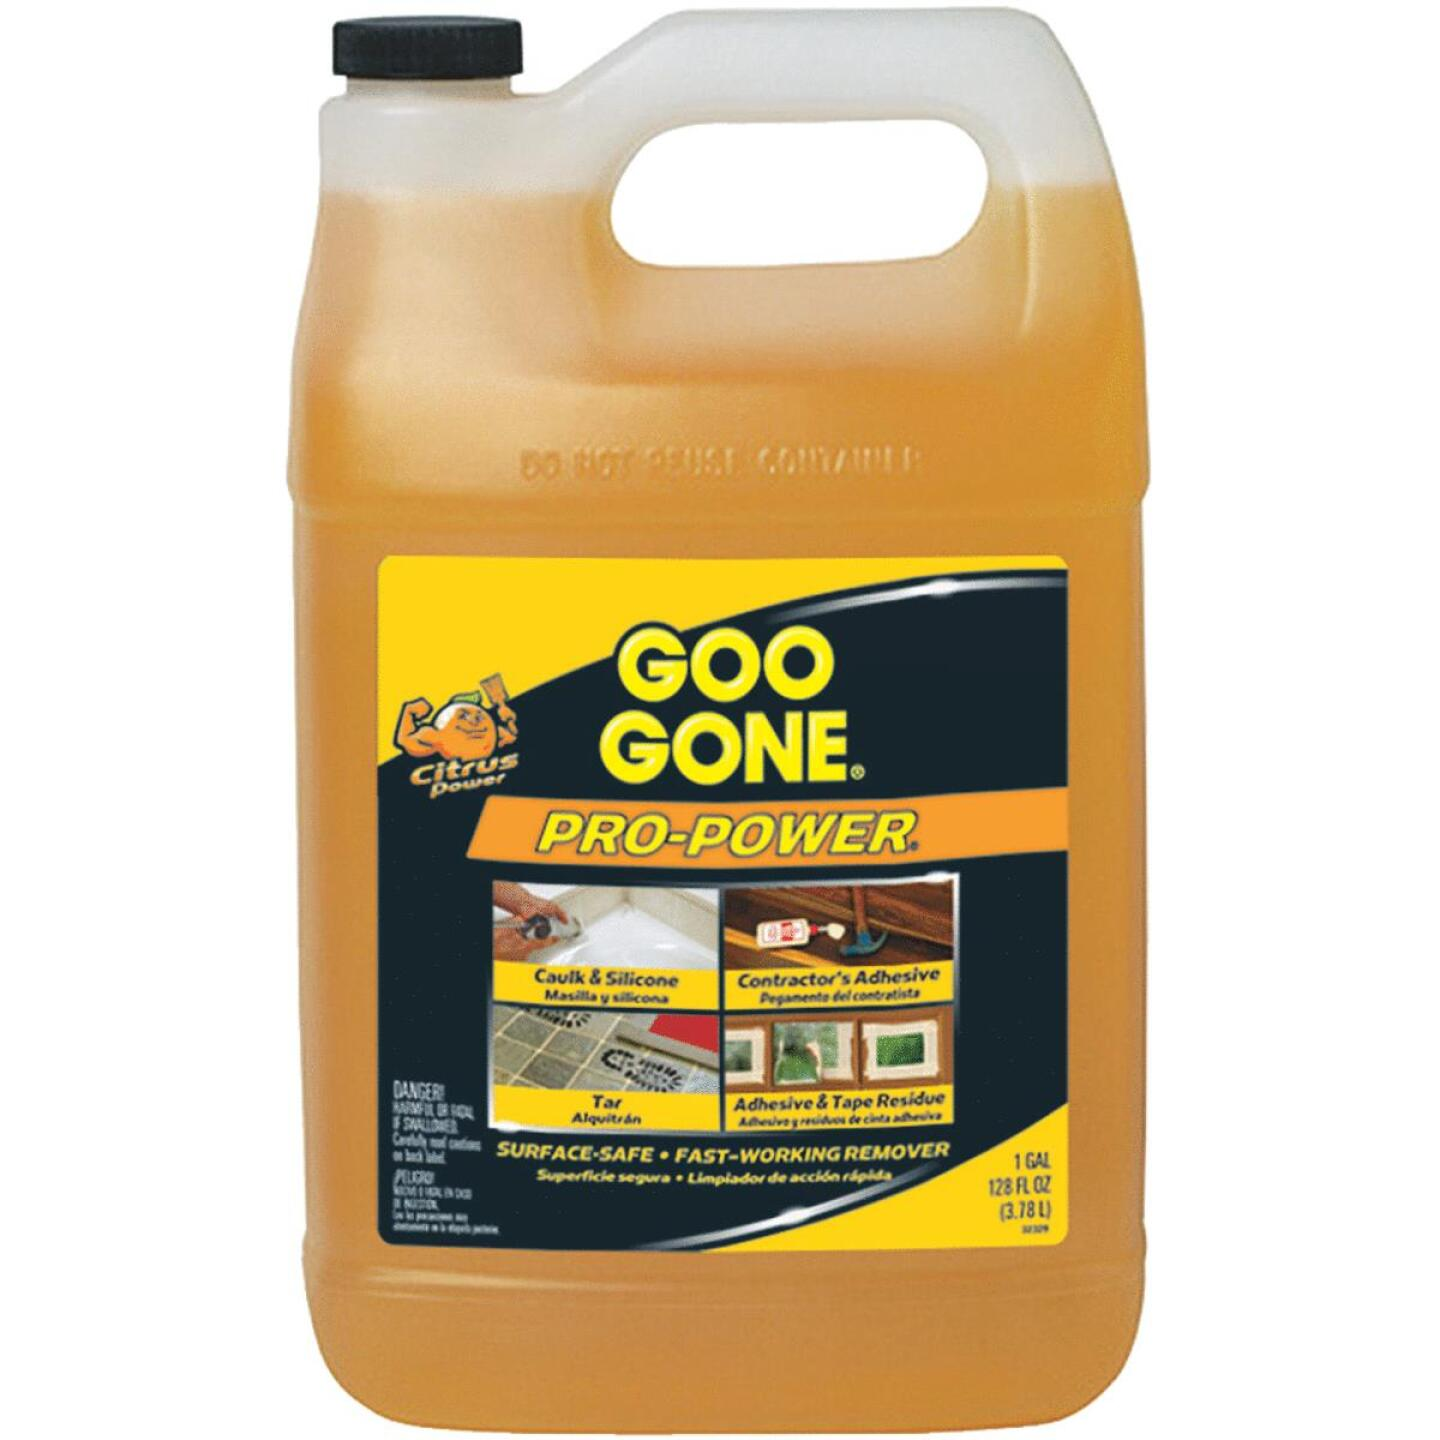 Goo Gone 1 Gal. Pro-Power Adhesive Remover Image 357